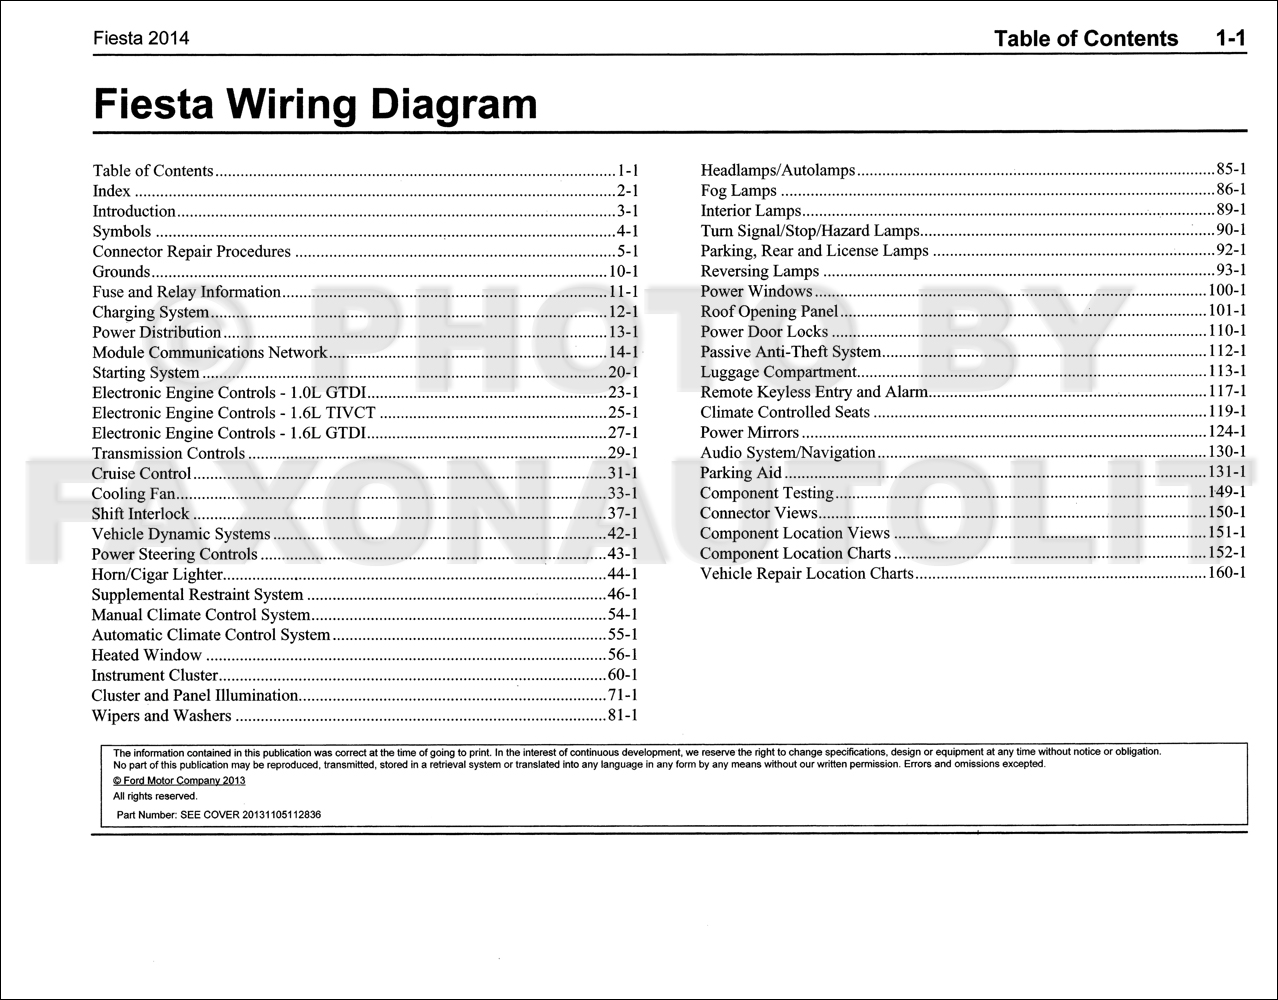 wiring diagram for ford fiesta non nte5 master socket 2014 manual original